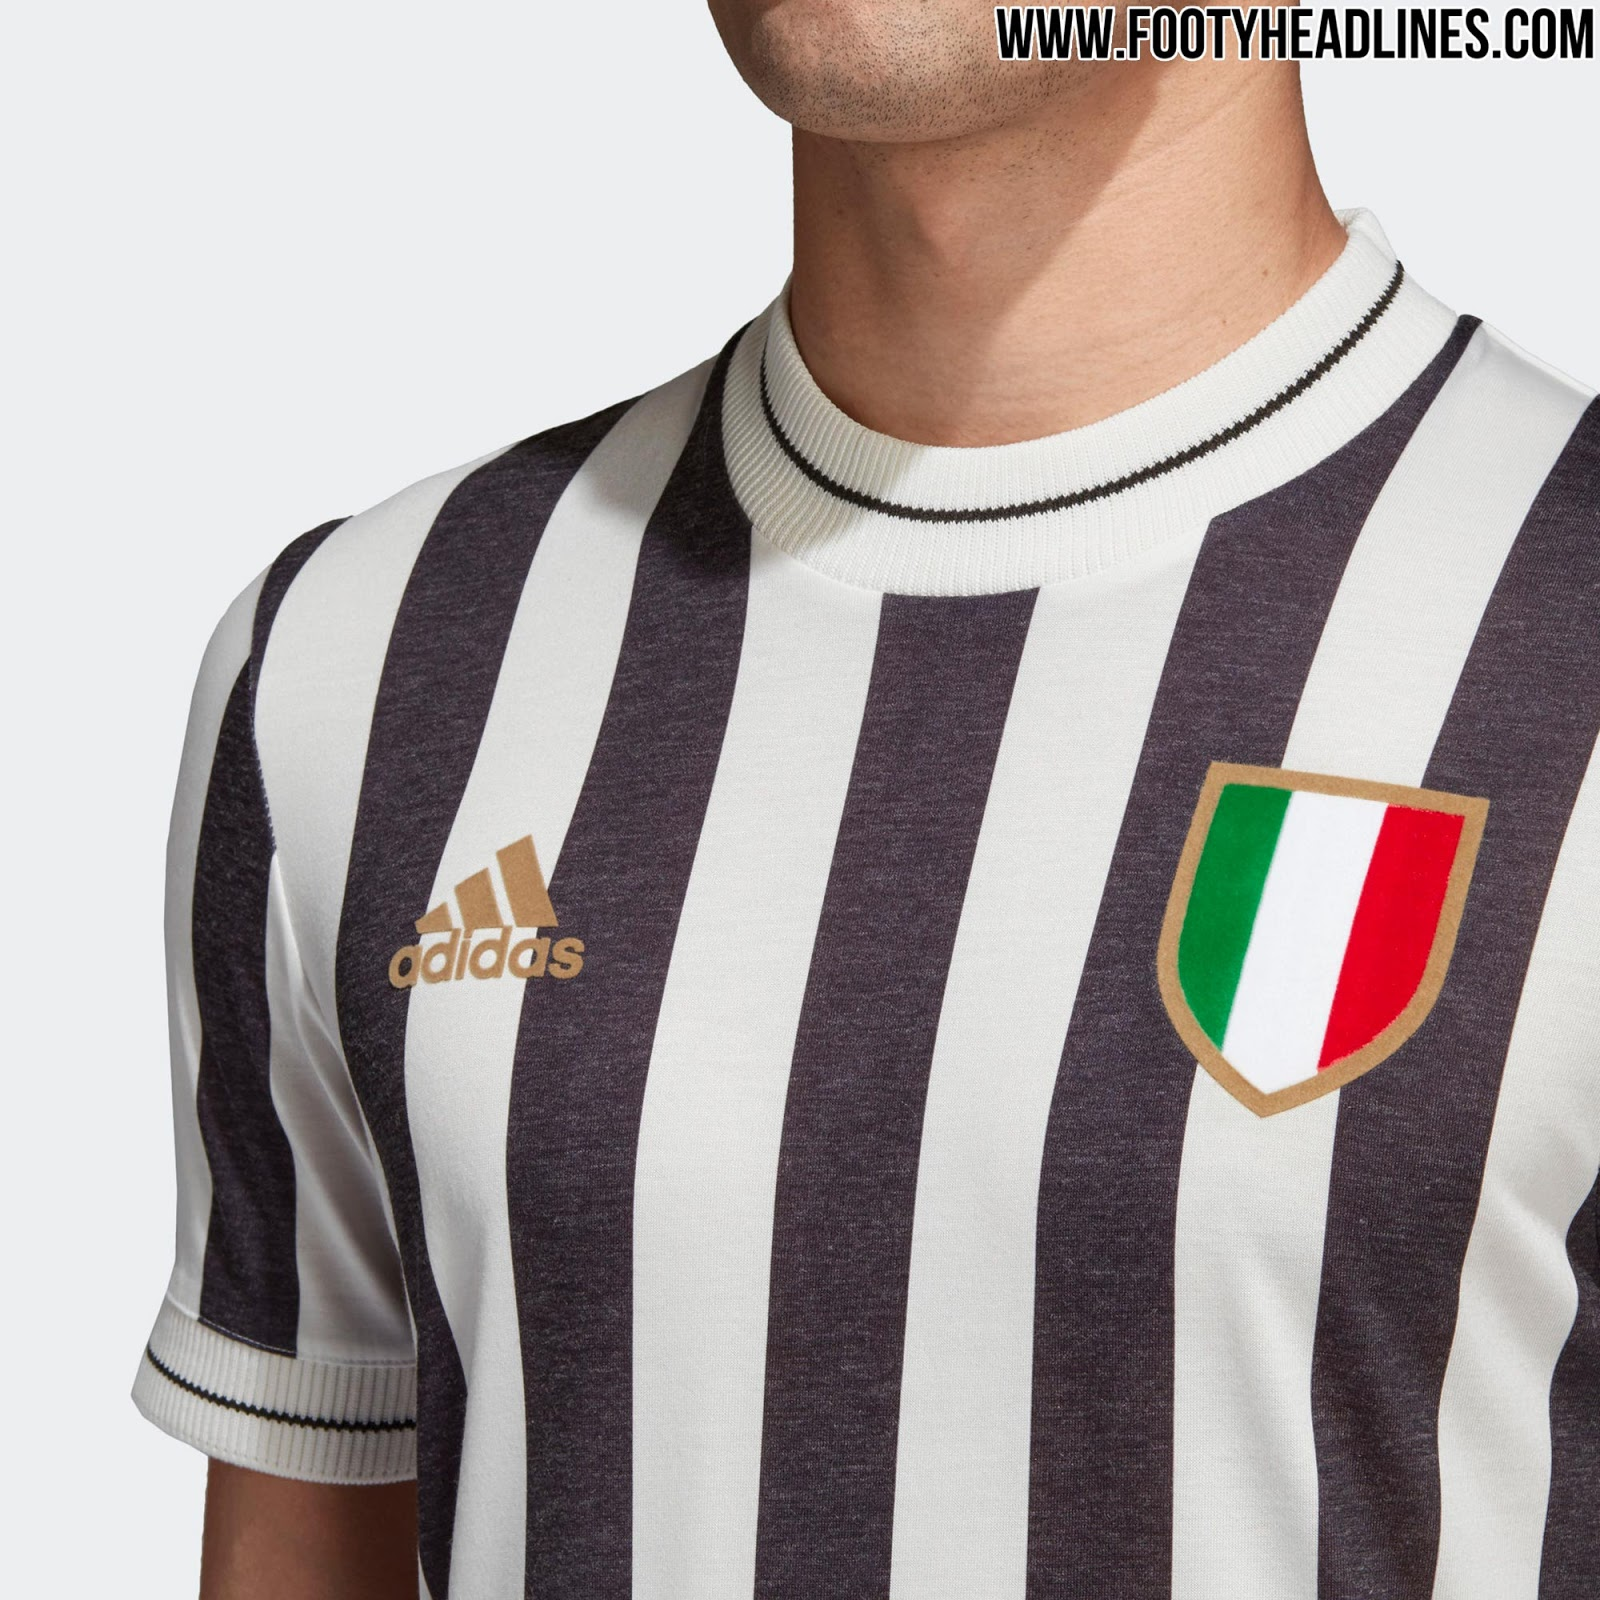 adidas manchester united real madrid bayern munich and juventus 2018 icon kits leaked. Black Bedroom Furniture Sets. Home Design Ideas